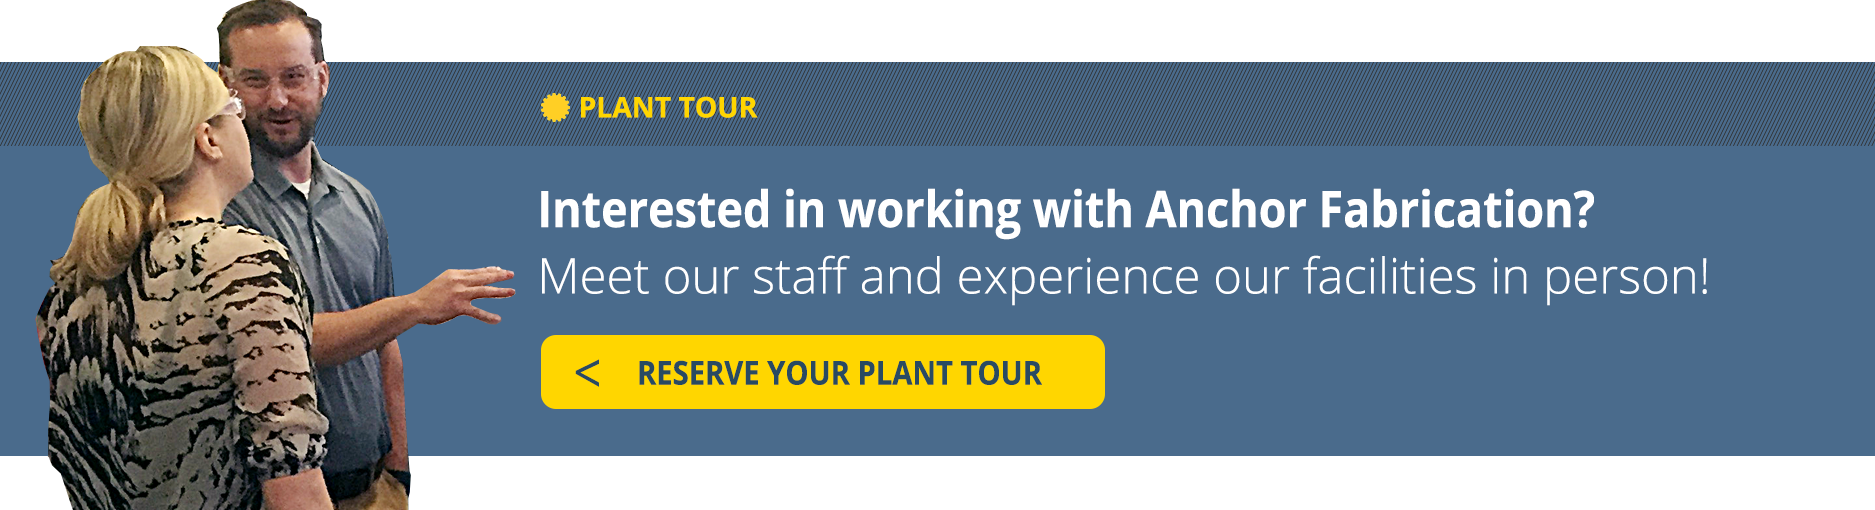 Schedule a Tour of Anchor Fabrication